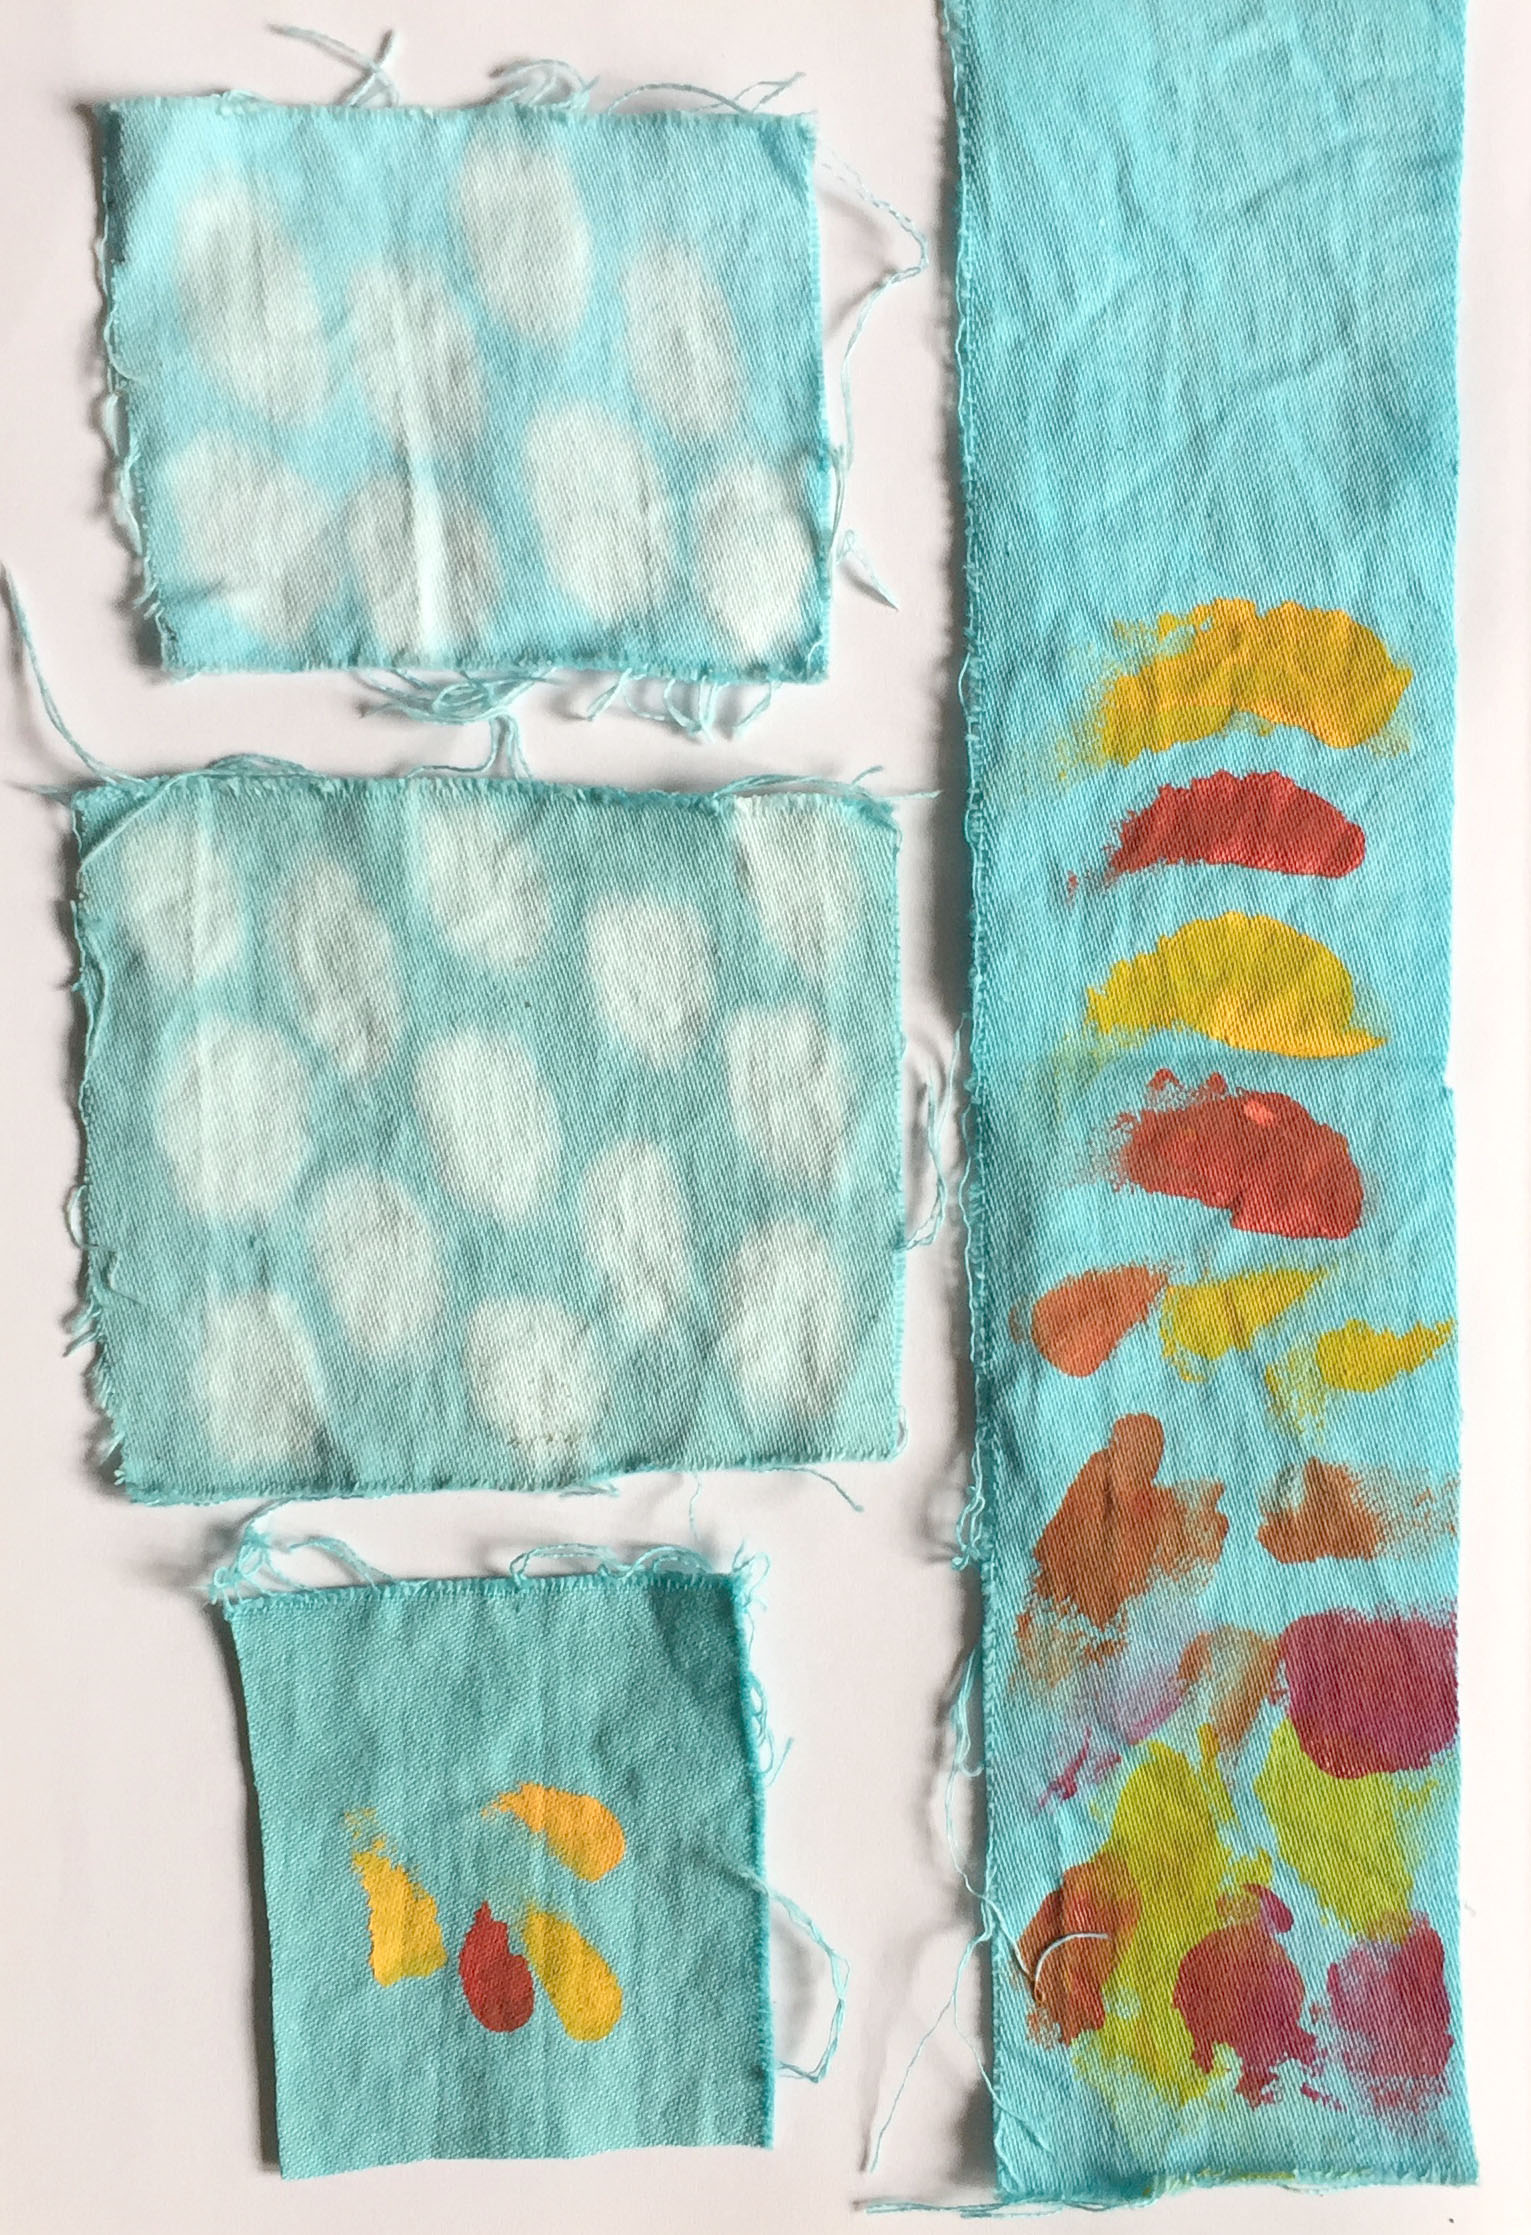 Bright, cheery colour samples in progress